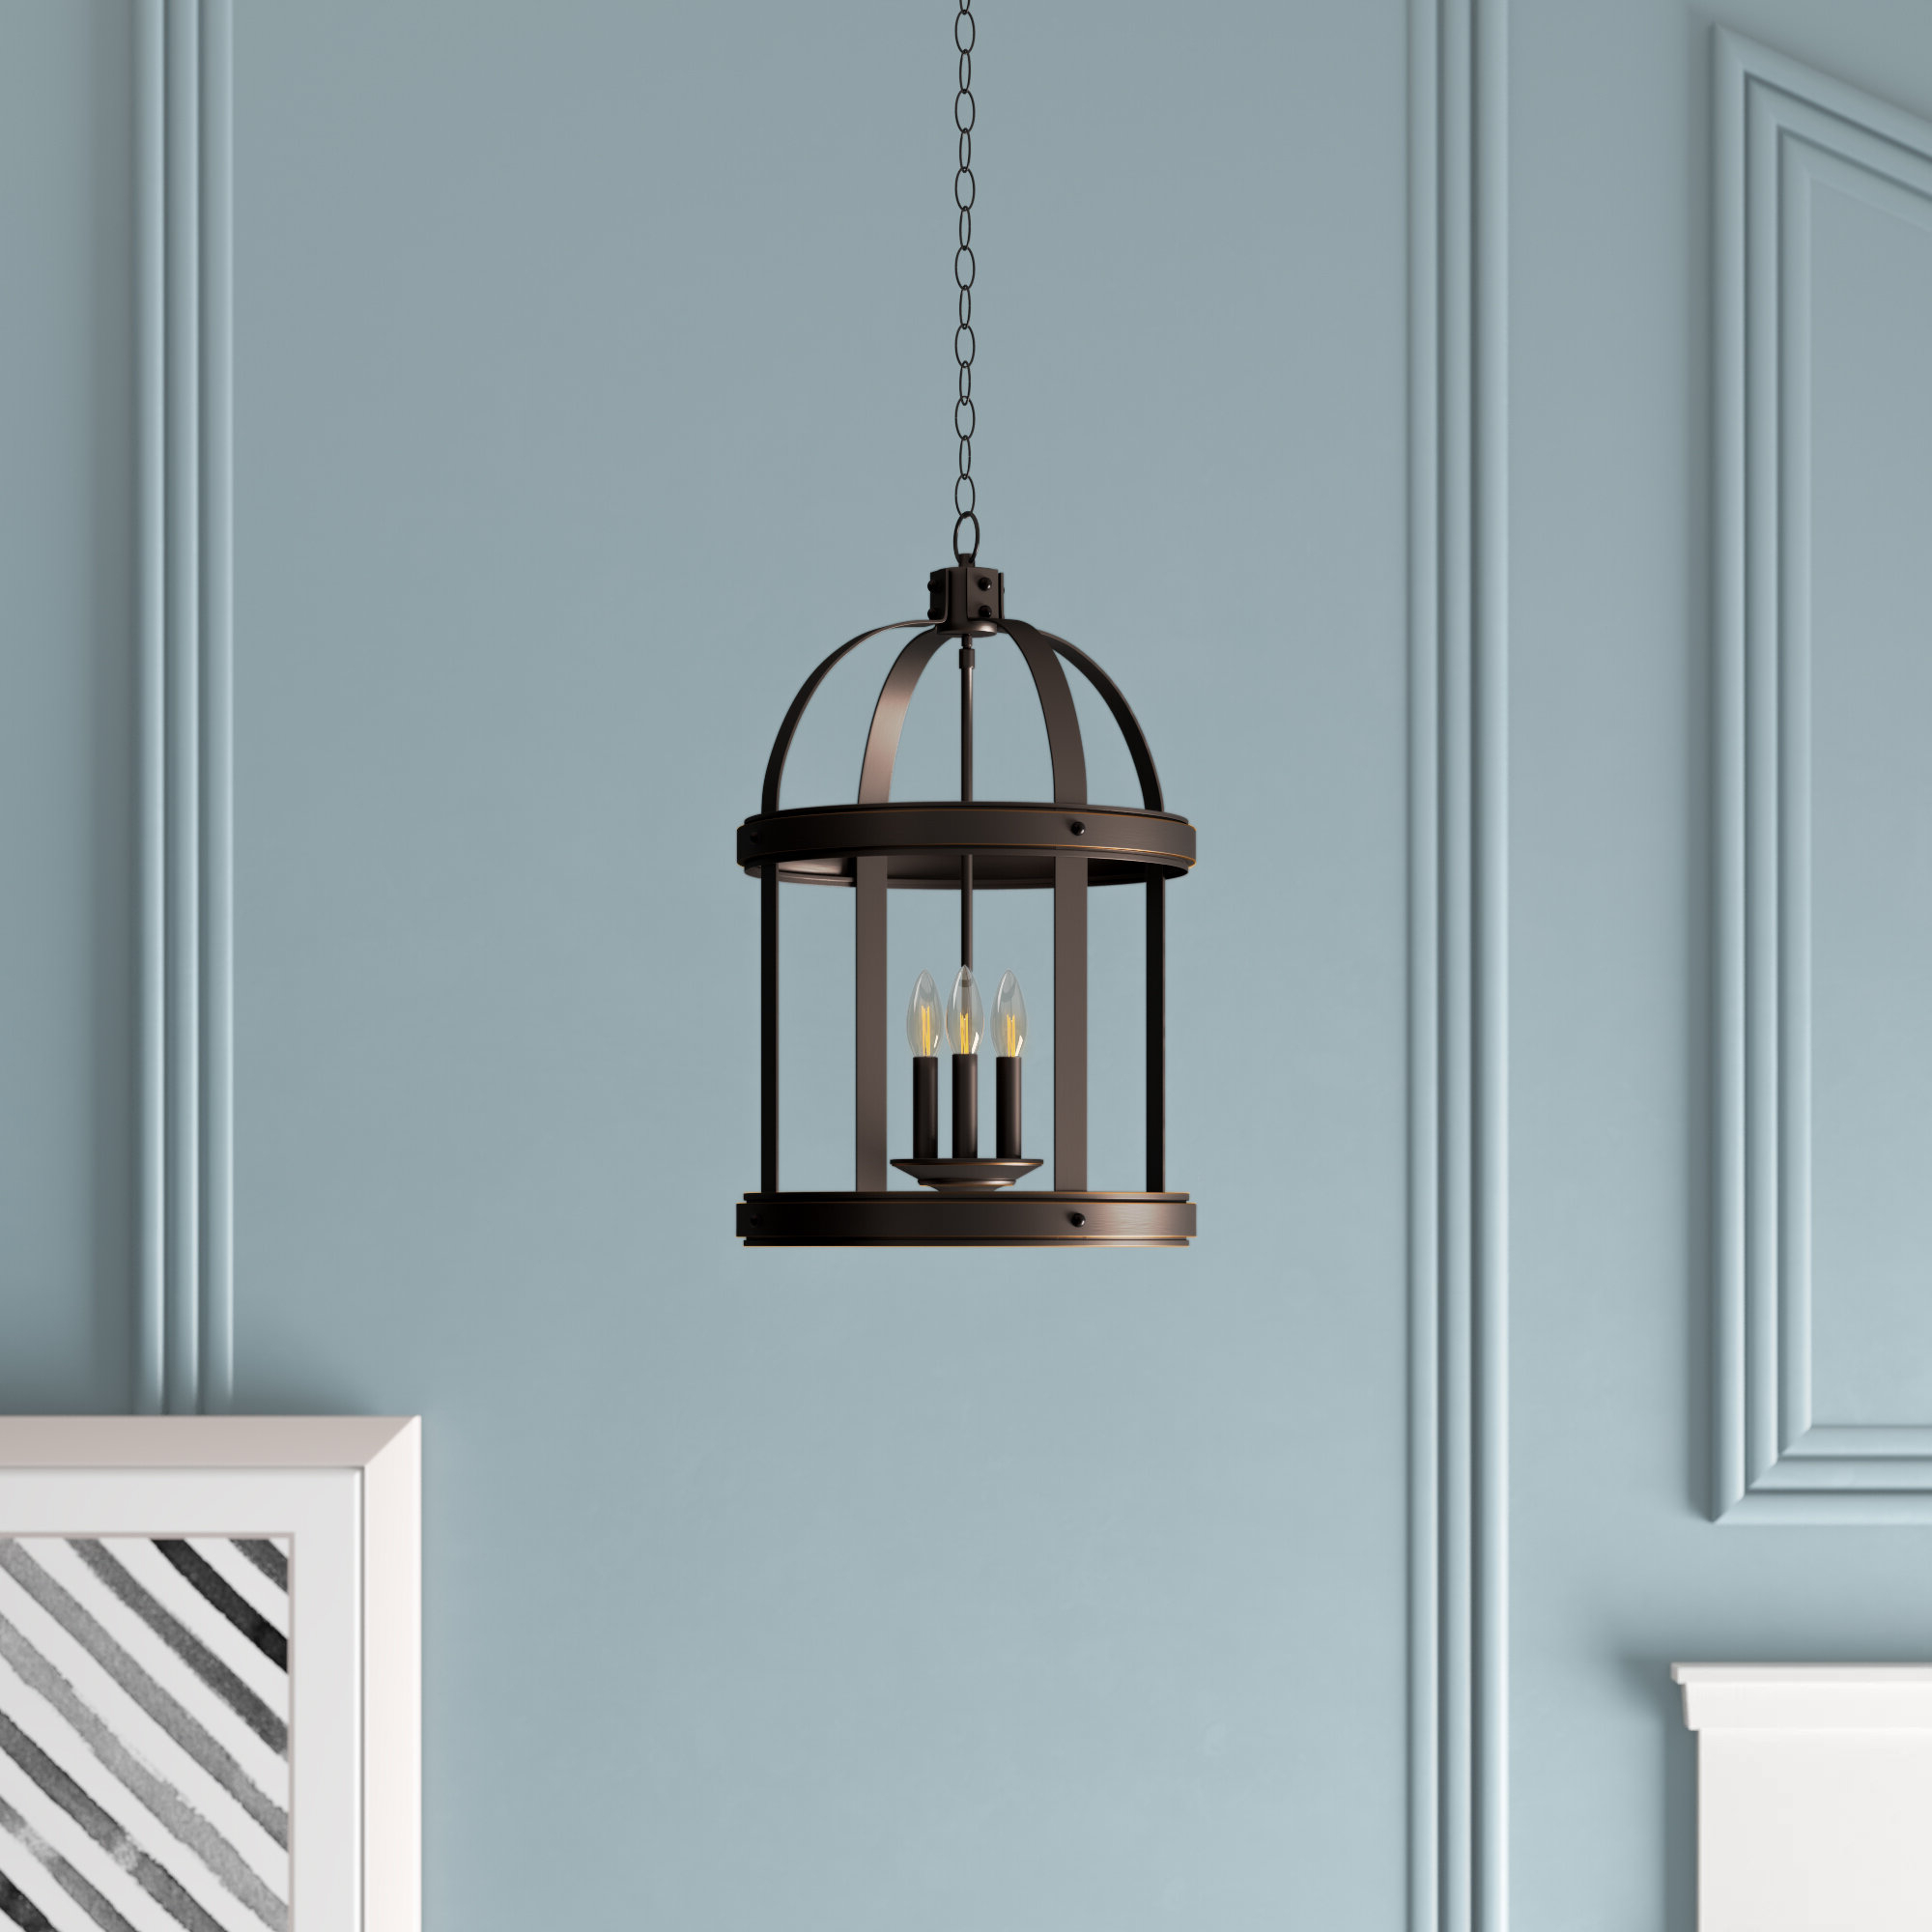 Chauvin 3 Light Lantern Geometric Pendants Throughout Most Up To Date Pawling 3 Light Lantern Cylinder Pendant (View 4 of 25)